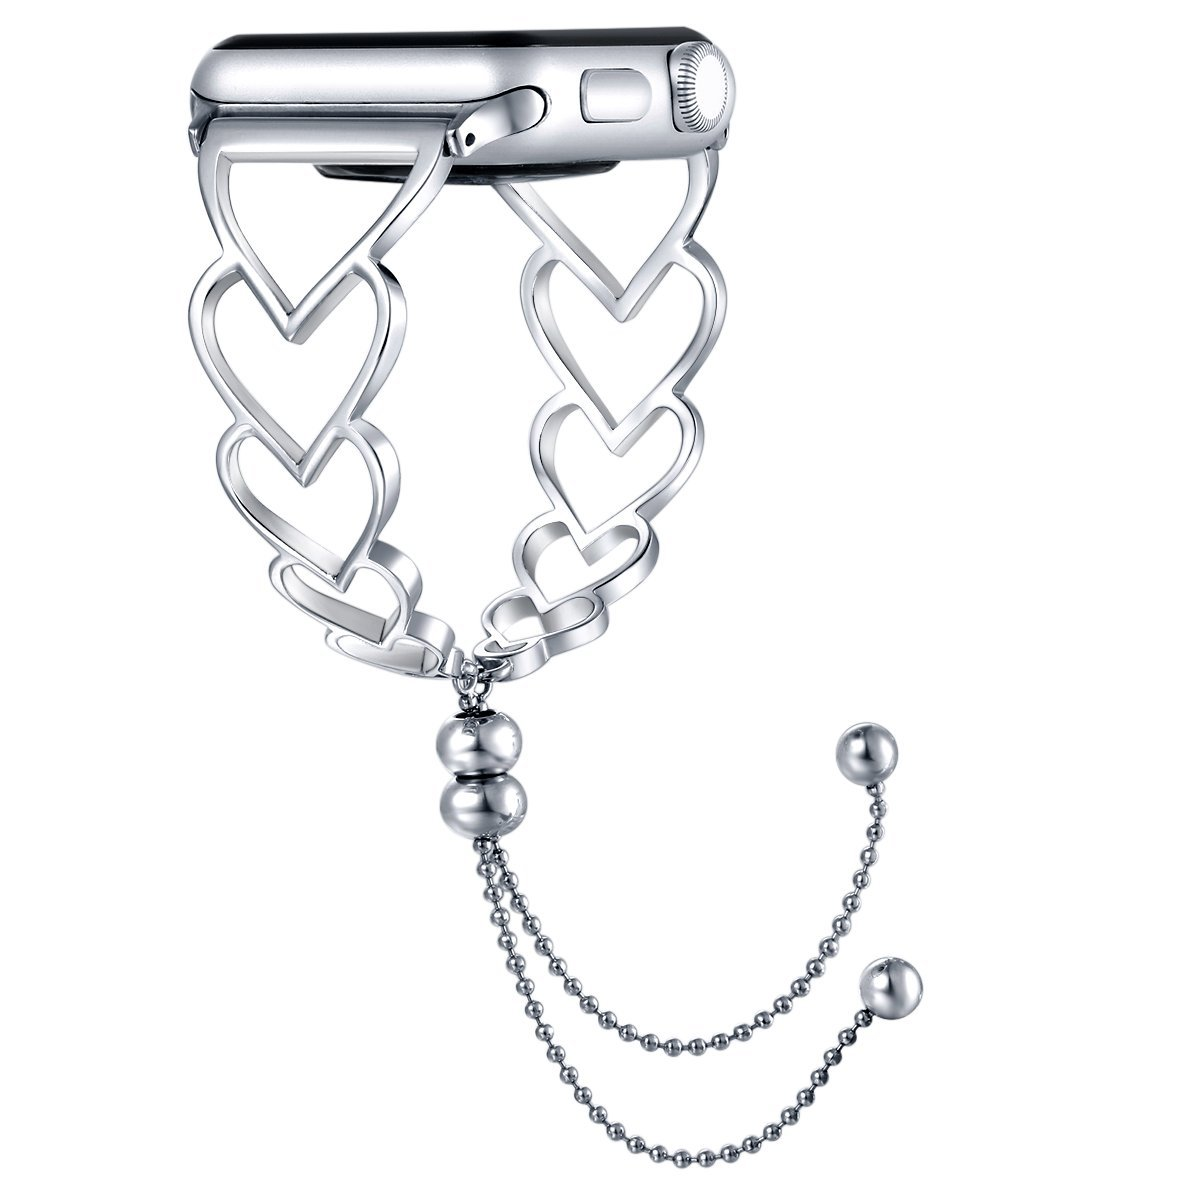 Fastgo for Apple Watch Band 38mm, 2018 June Newest Released Unique Stainless Steel Dressy Georgeous Feminine Replacement Band for Iwatch Series 3/2/1 Women Girls Adjustable Jewelry(Silver-38mm)